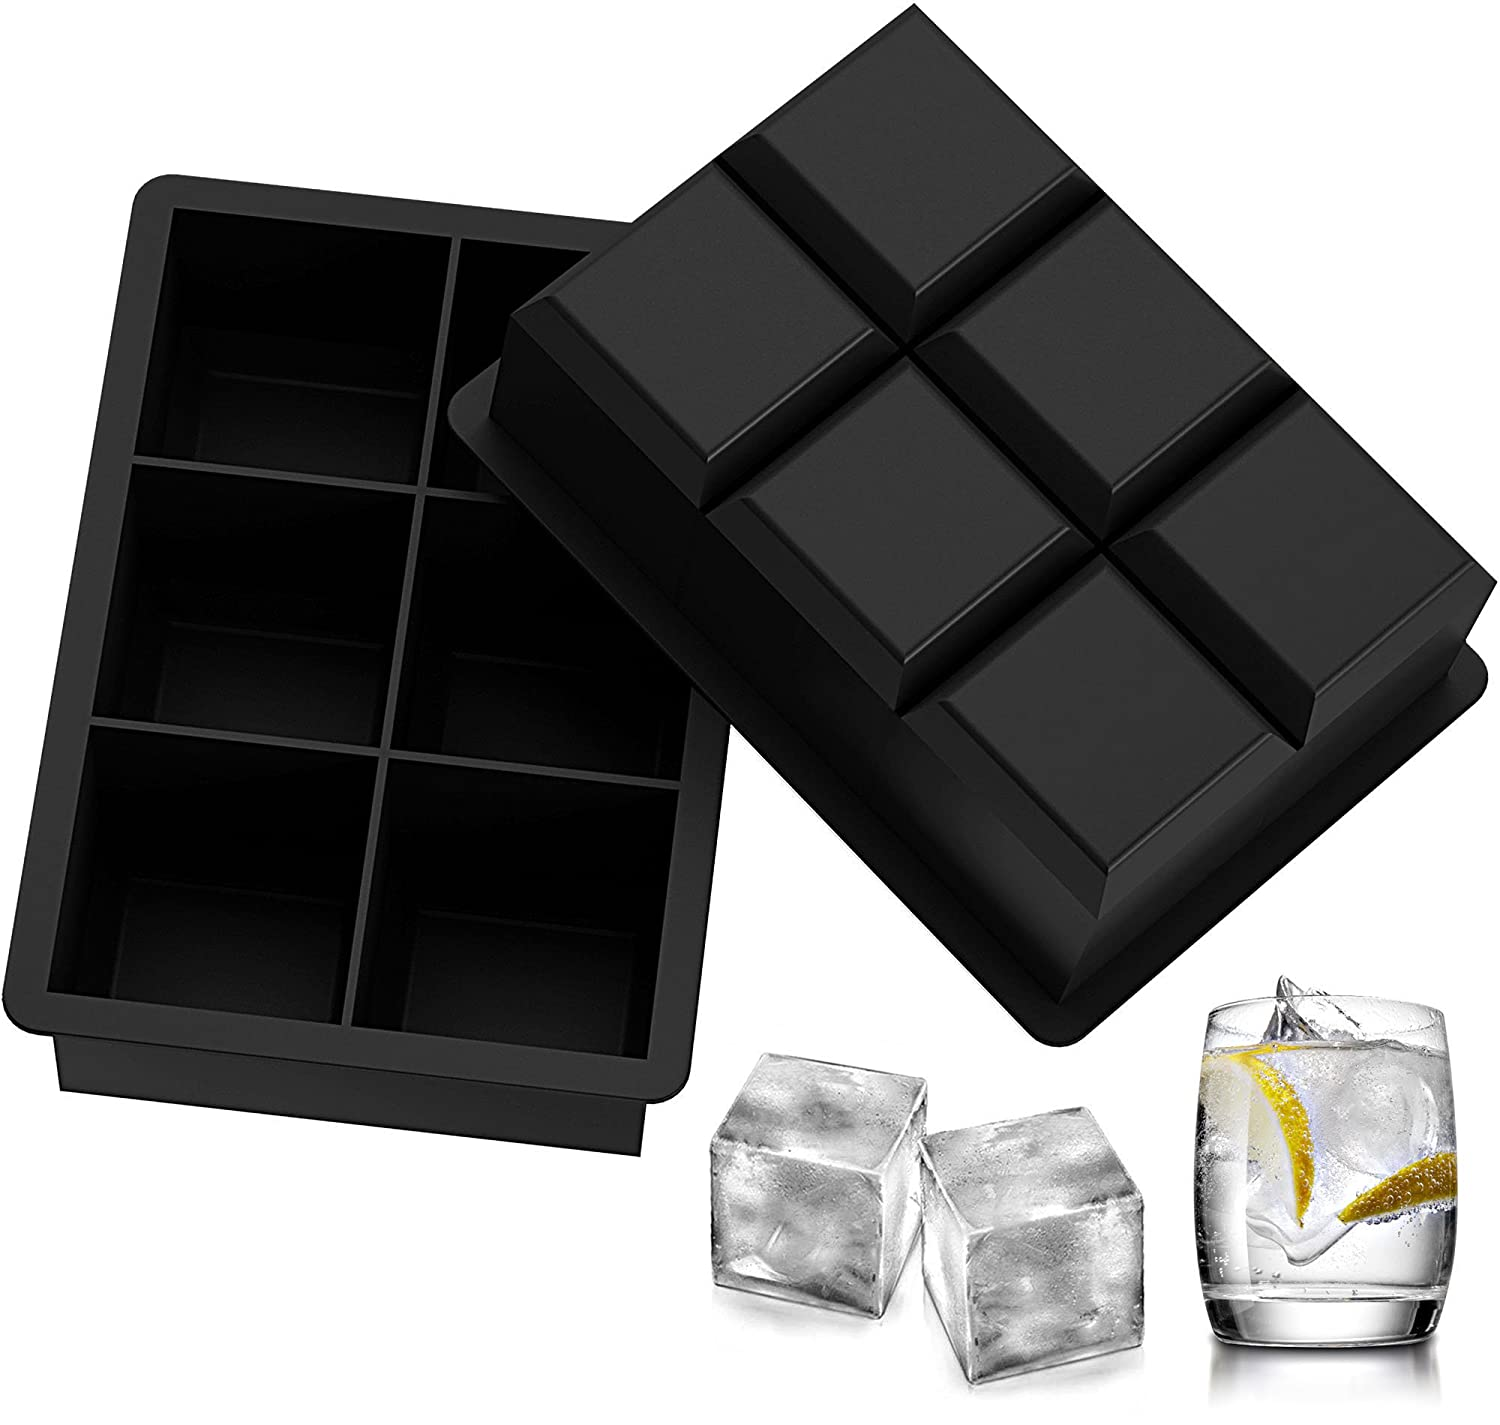 Ozera 2 Pack Silicone Ice Cube Tray Molds Candy Mold Cake Mold Chocolate Mold 6 Cavity Black CCC-023-3